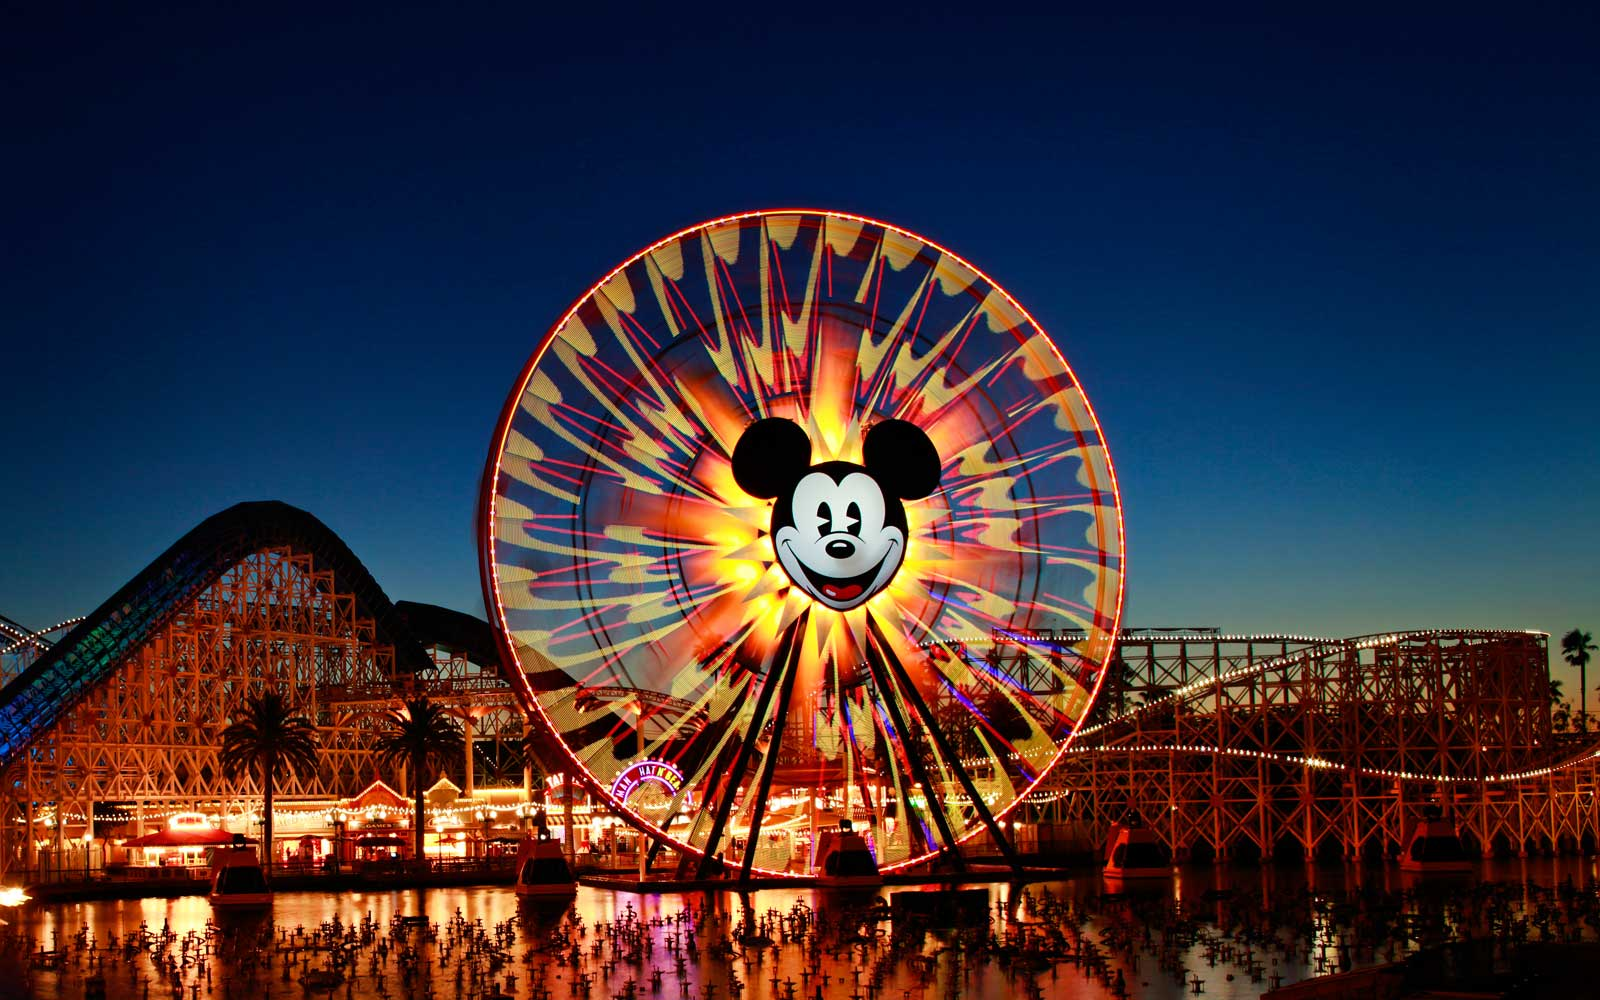 7 Secrets About Disney Rides Direct From the Imagineers Who Designed Them